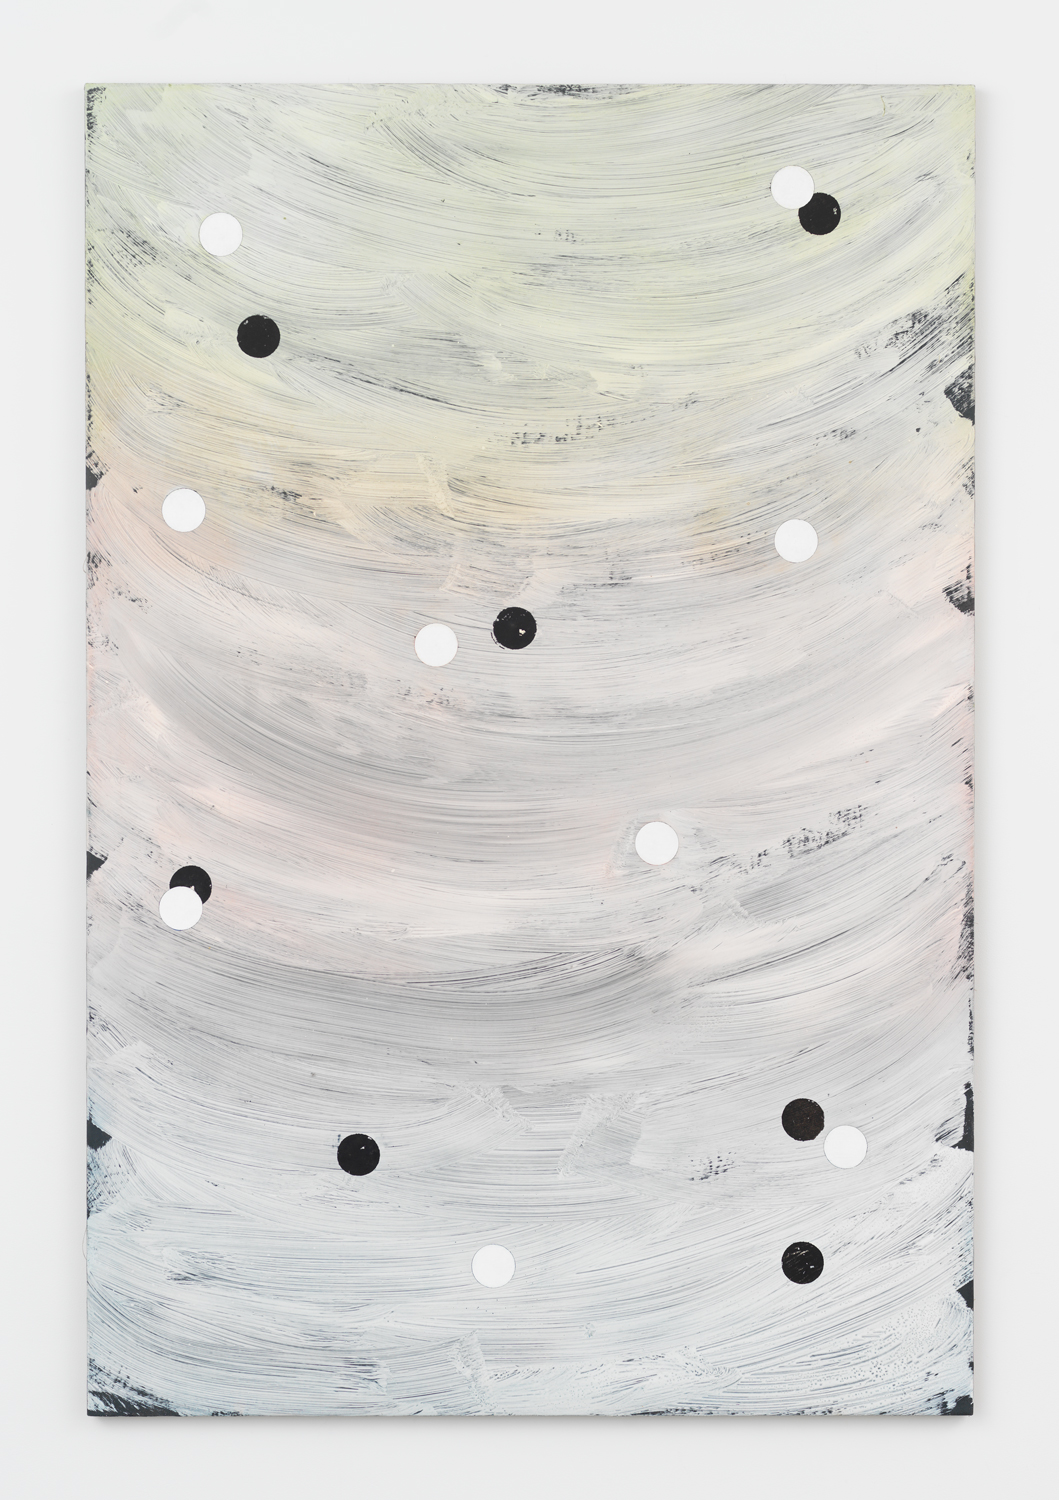 Alex Kwartler, Untitled, 2019, plaster, acrylic, and oil on linen, 72h x 48w in.